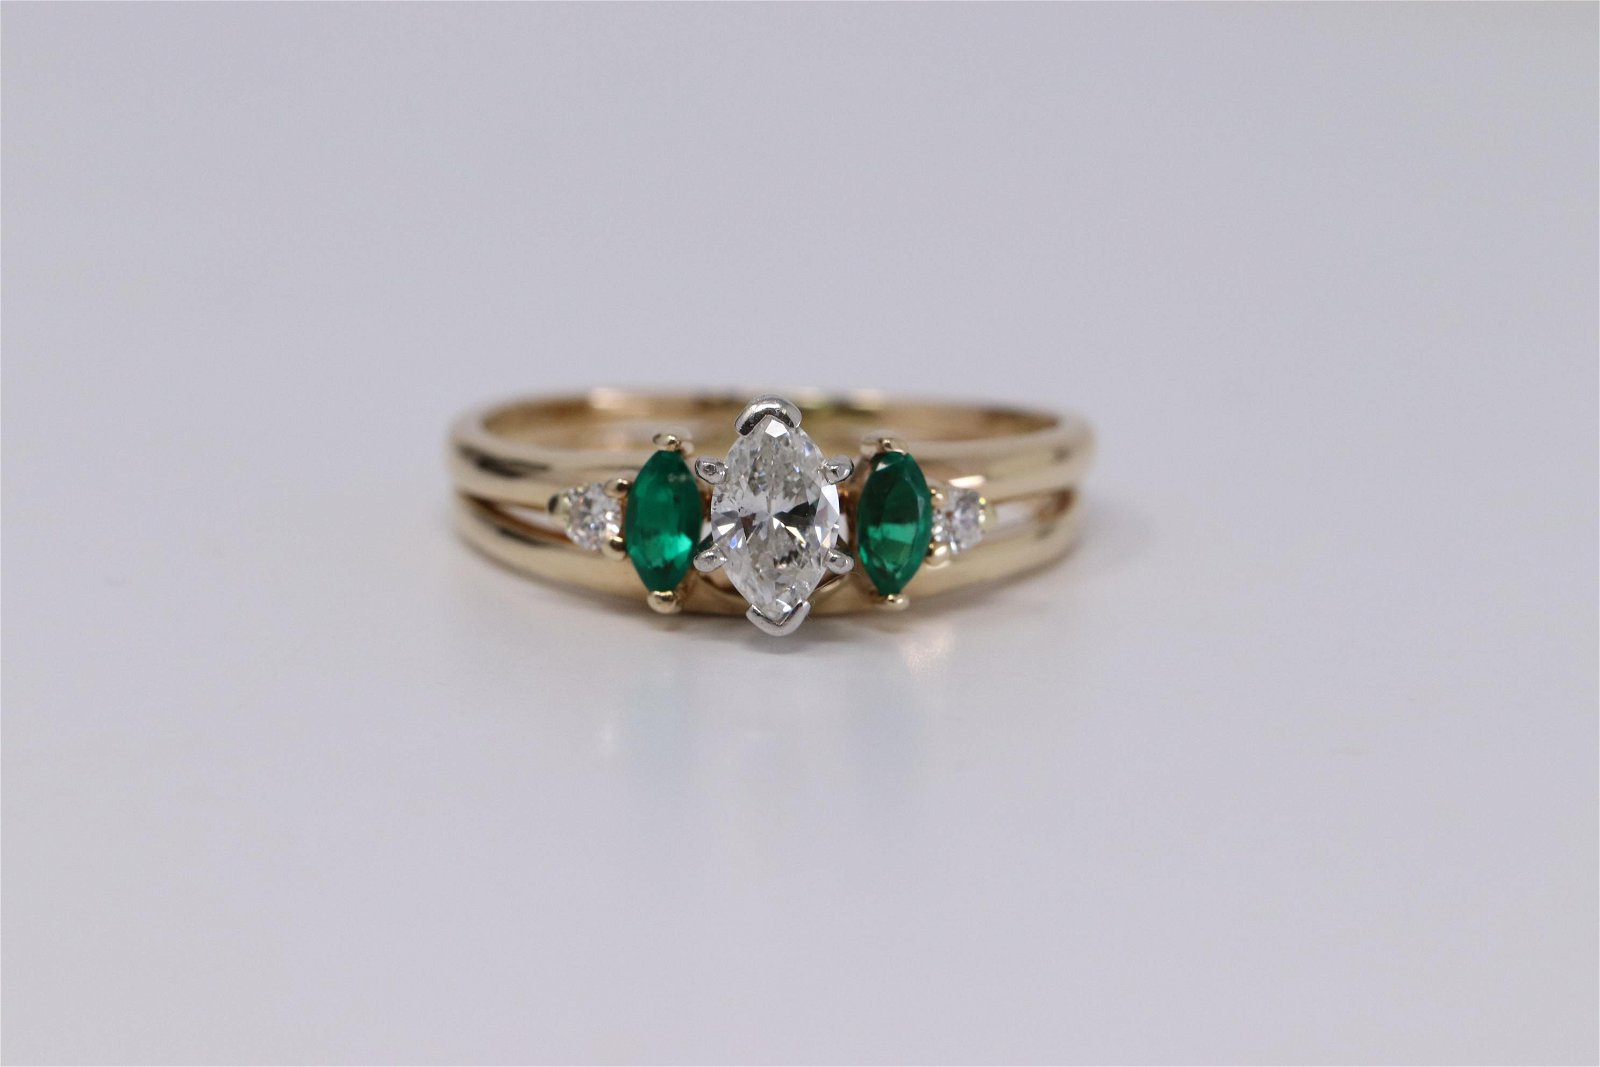 14Kt Yellow Gold Diamond & Emerald Ring